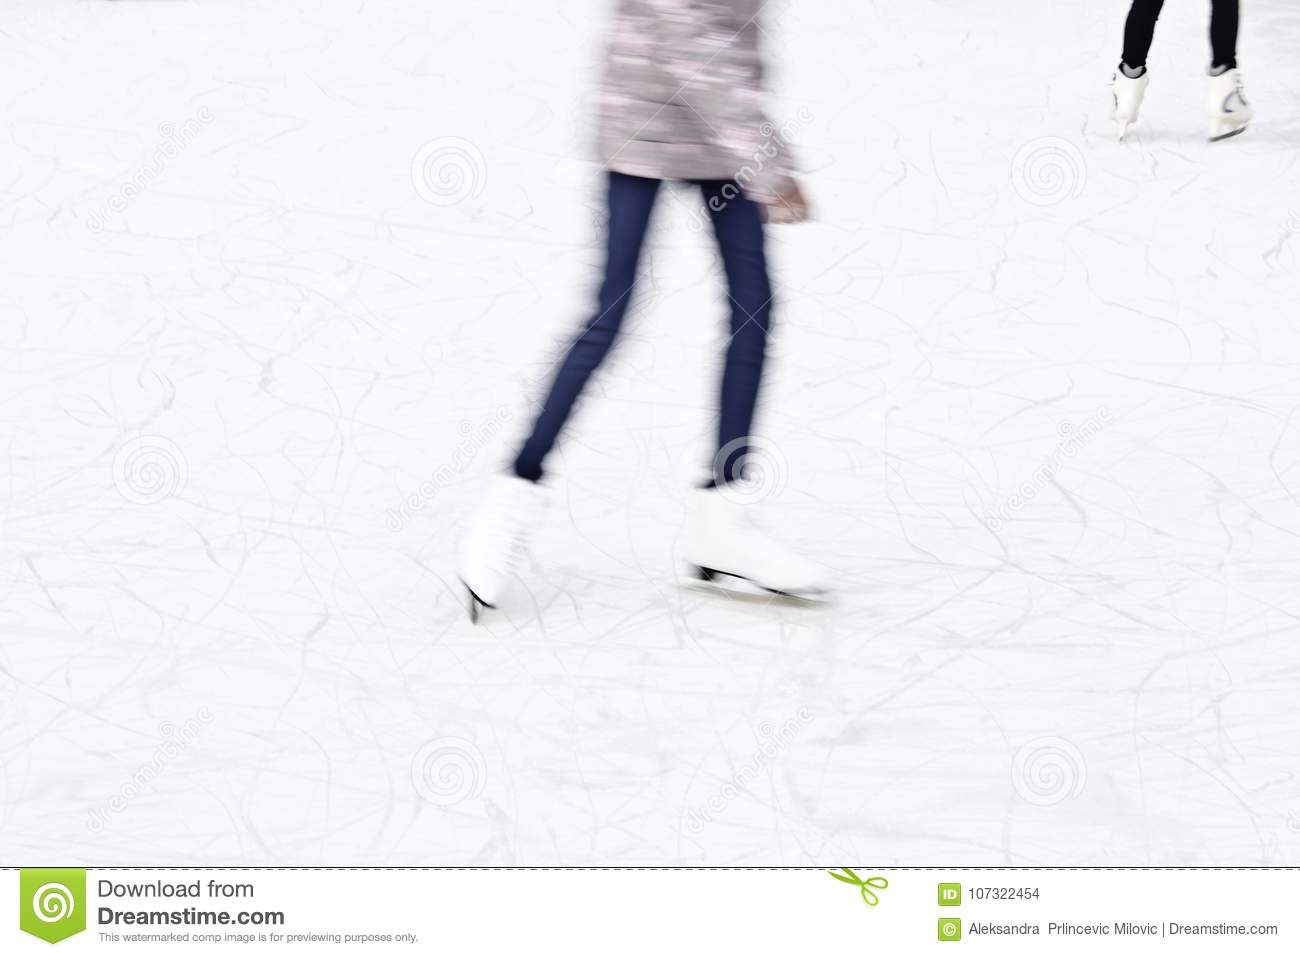 Arty blurry ice skating detail